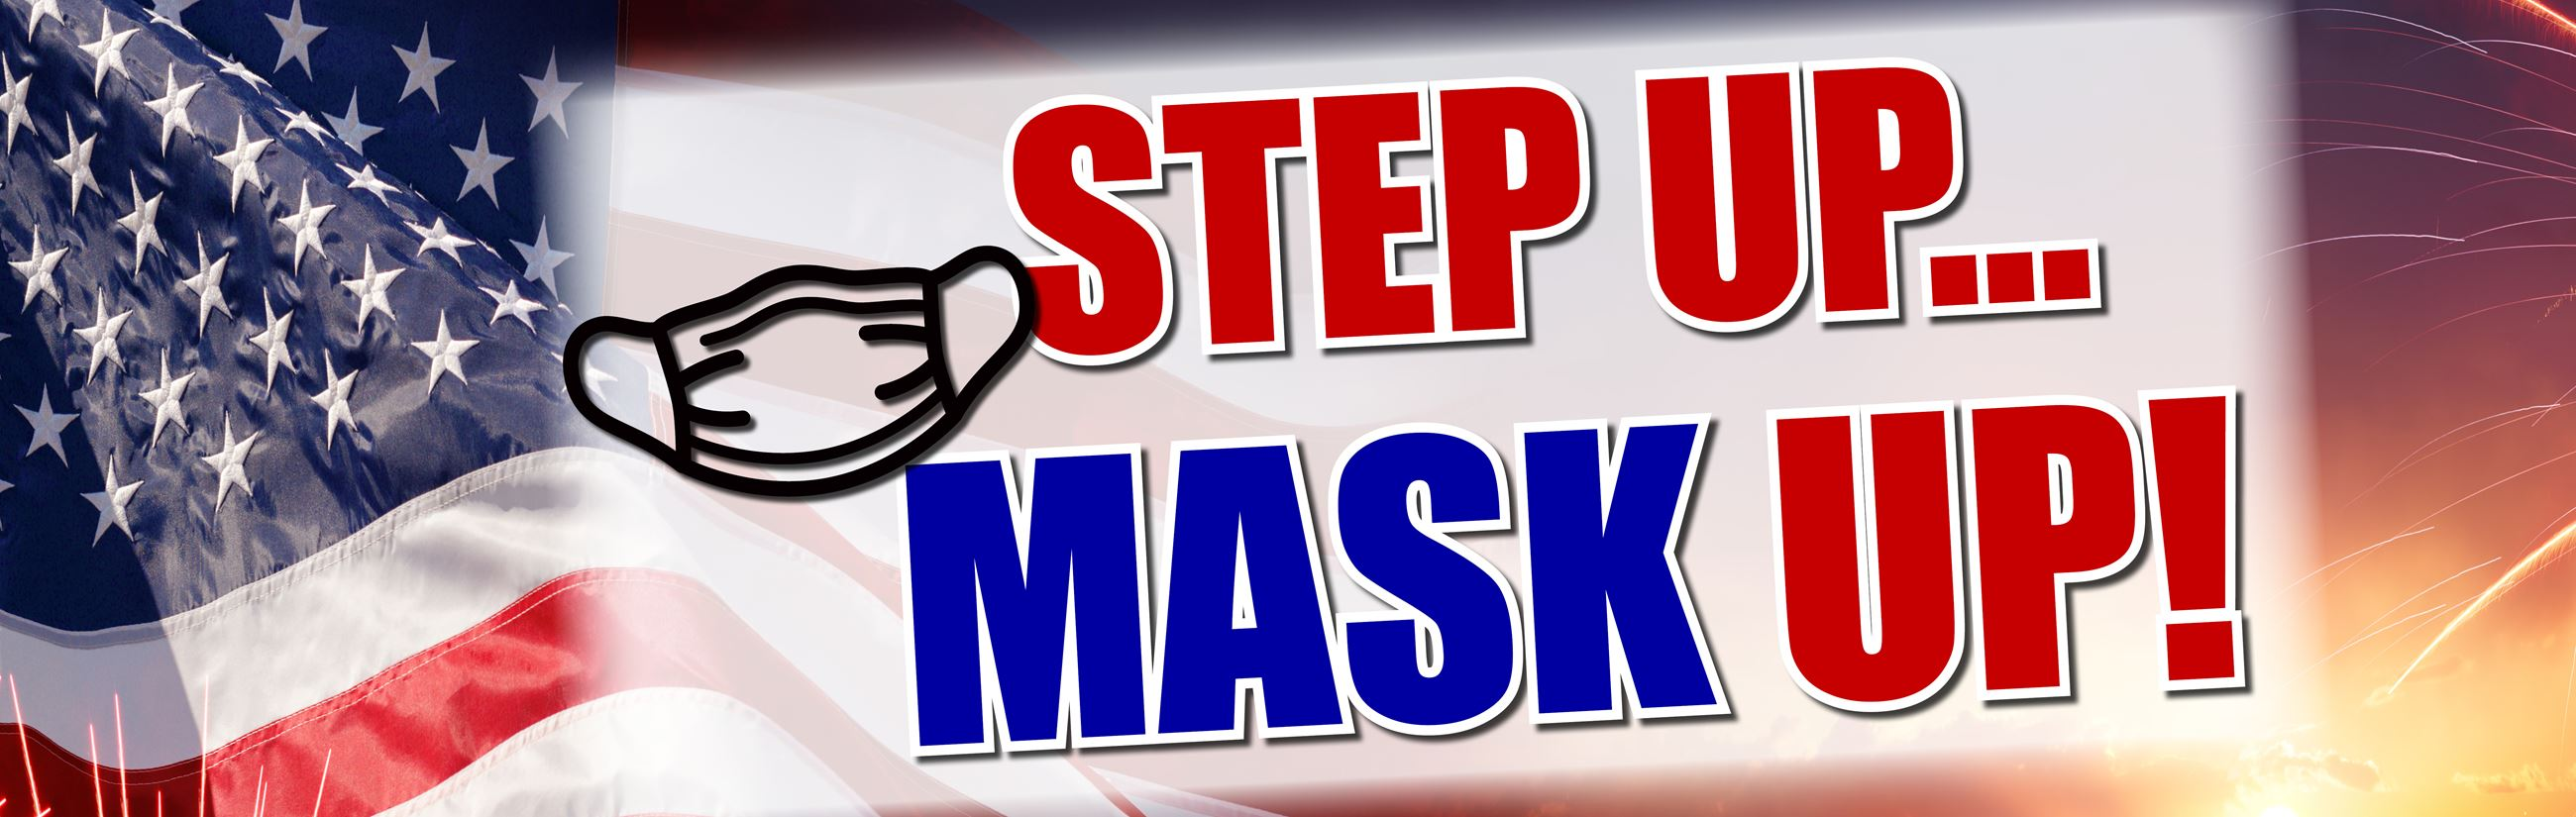 Mask Up Web Banner